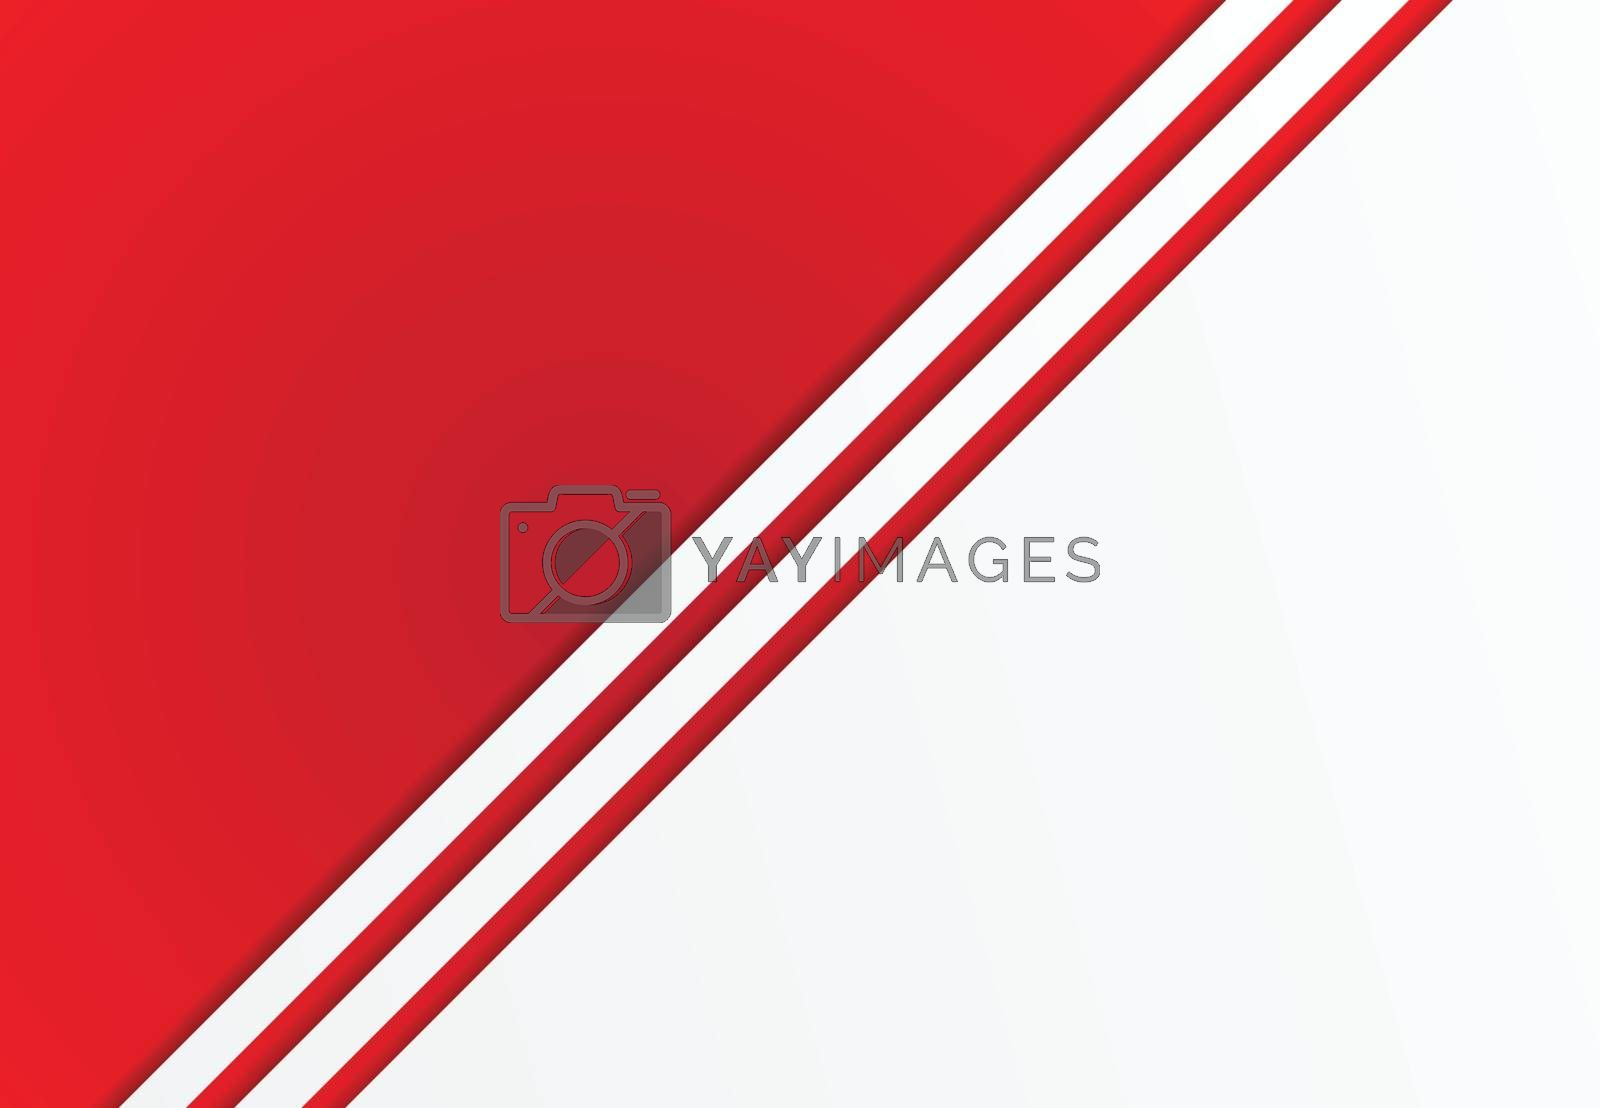 Abstract background red with white lines diagonal copy space for print, ad, magazine, poster, brochure, leaflet, flyer, Vector illustration